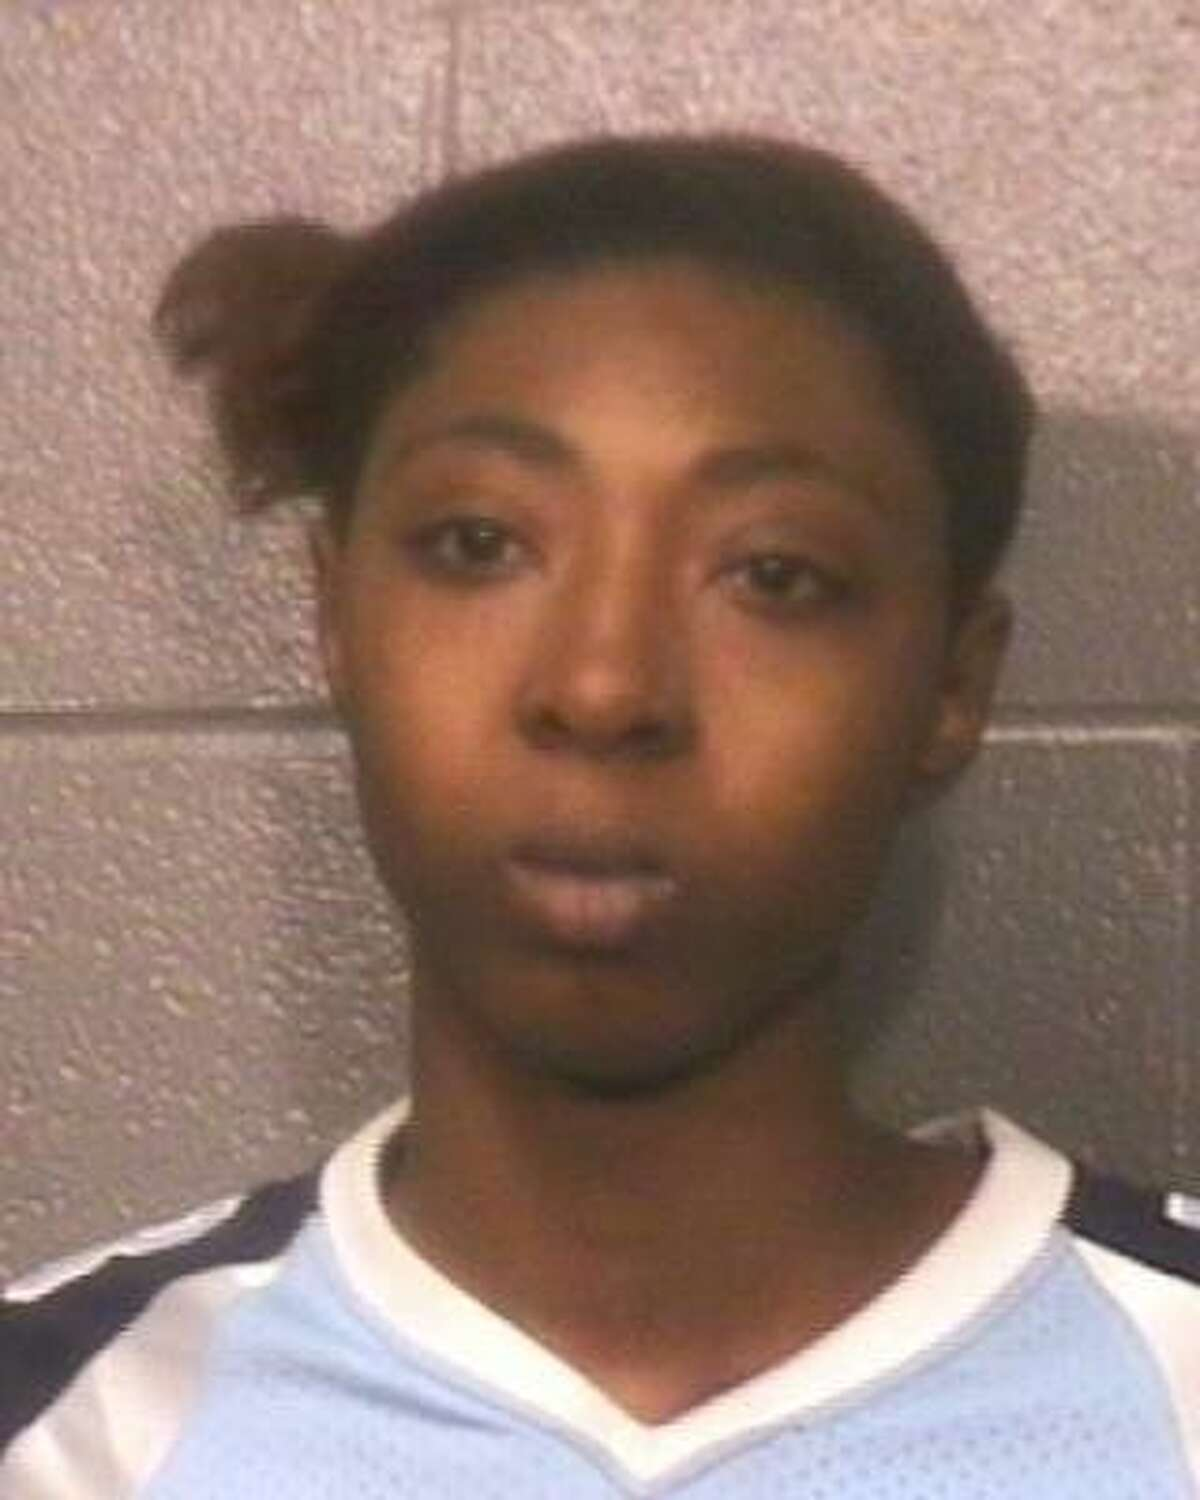 Krystal Cashaw, 24, was last seen Jan. 31, 2007. Investigators have learned that she was mentally handicapped and that she was in an abusive relationship with her husband.